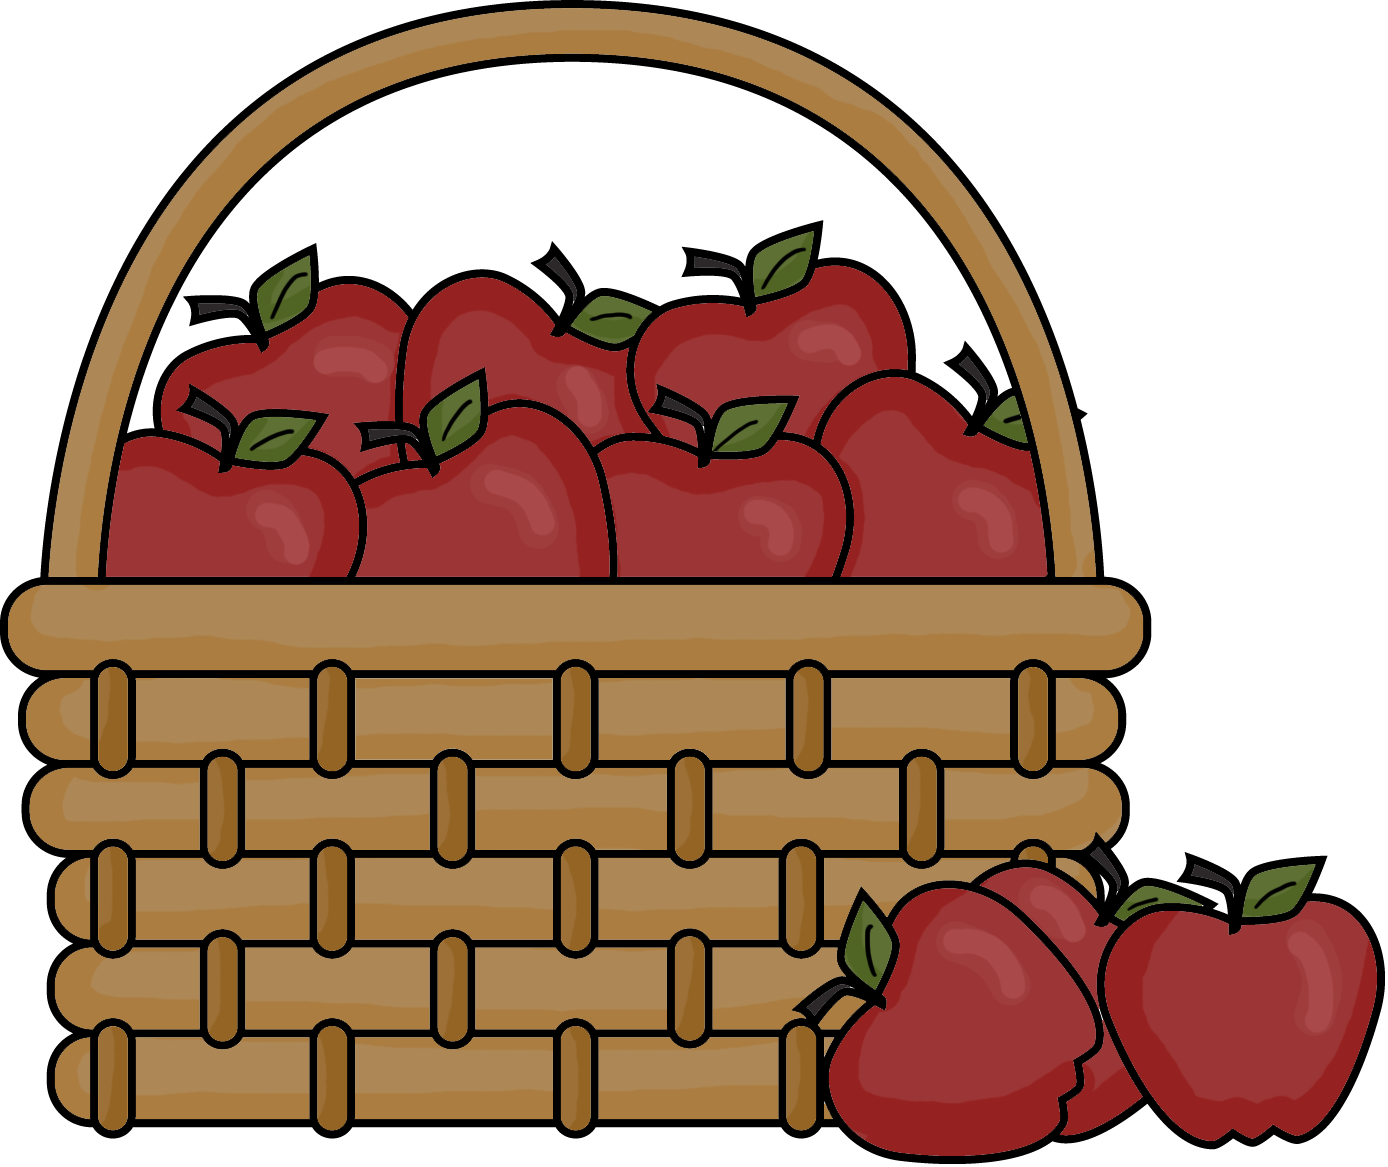 ... Cartoon Pictures Of Green Red Apples In A Basket - ClipArt Best